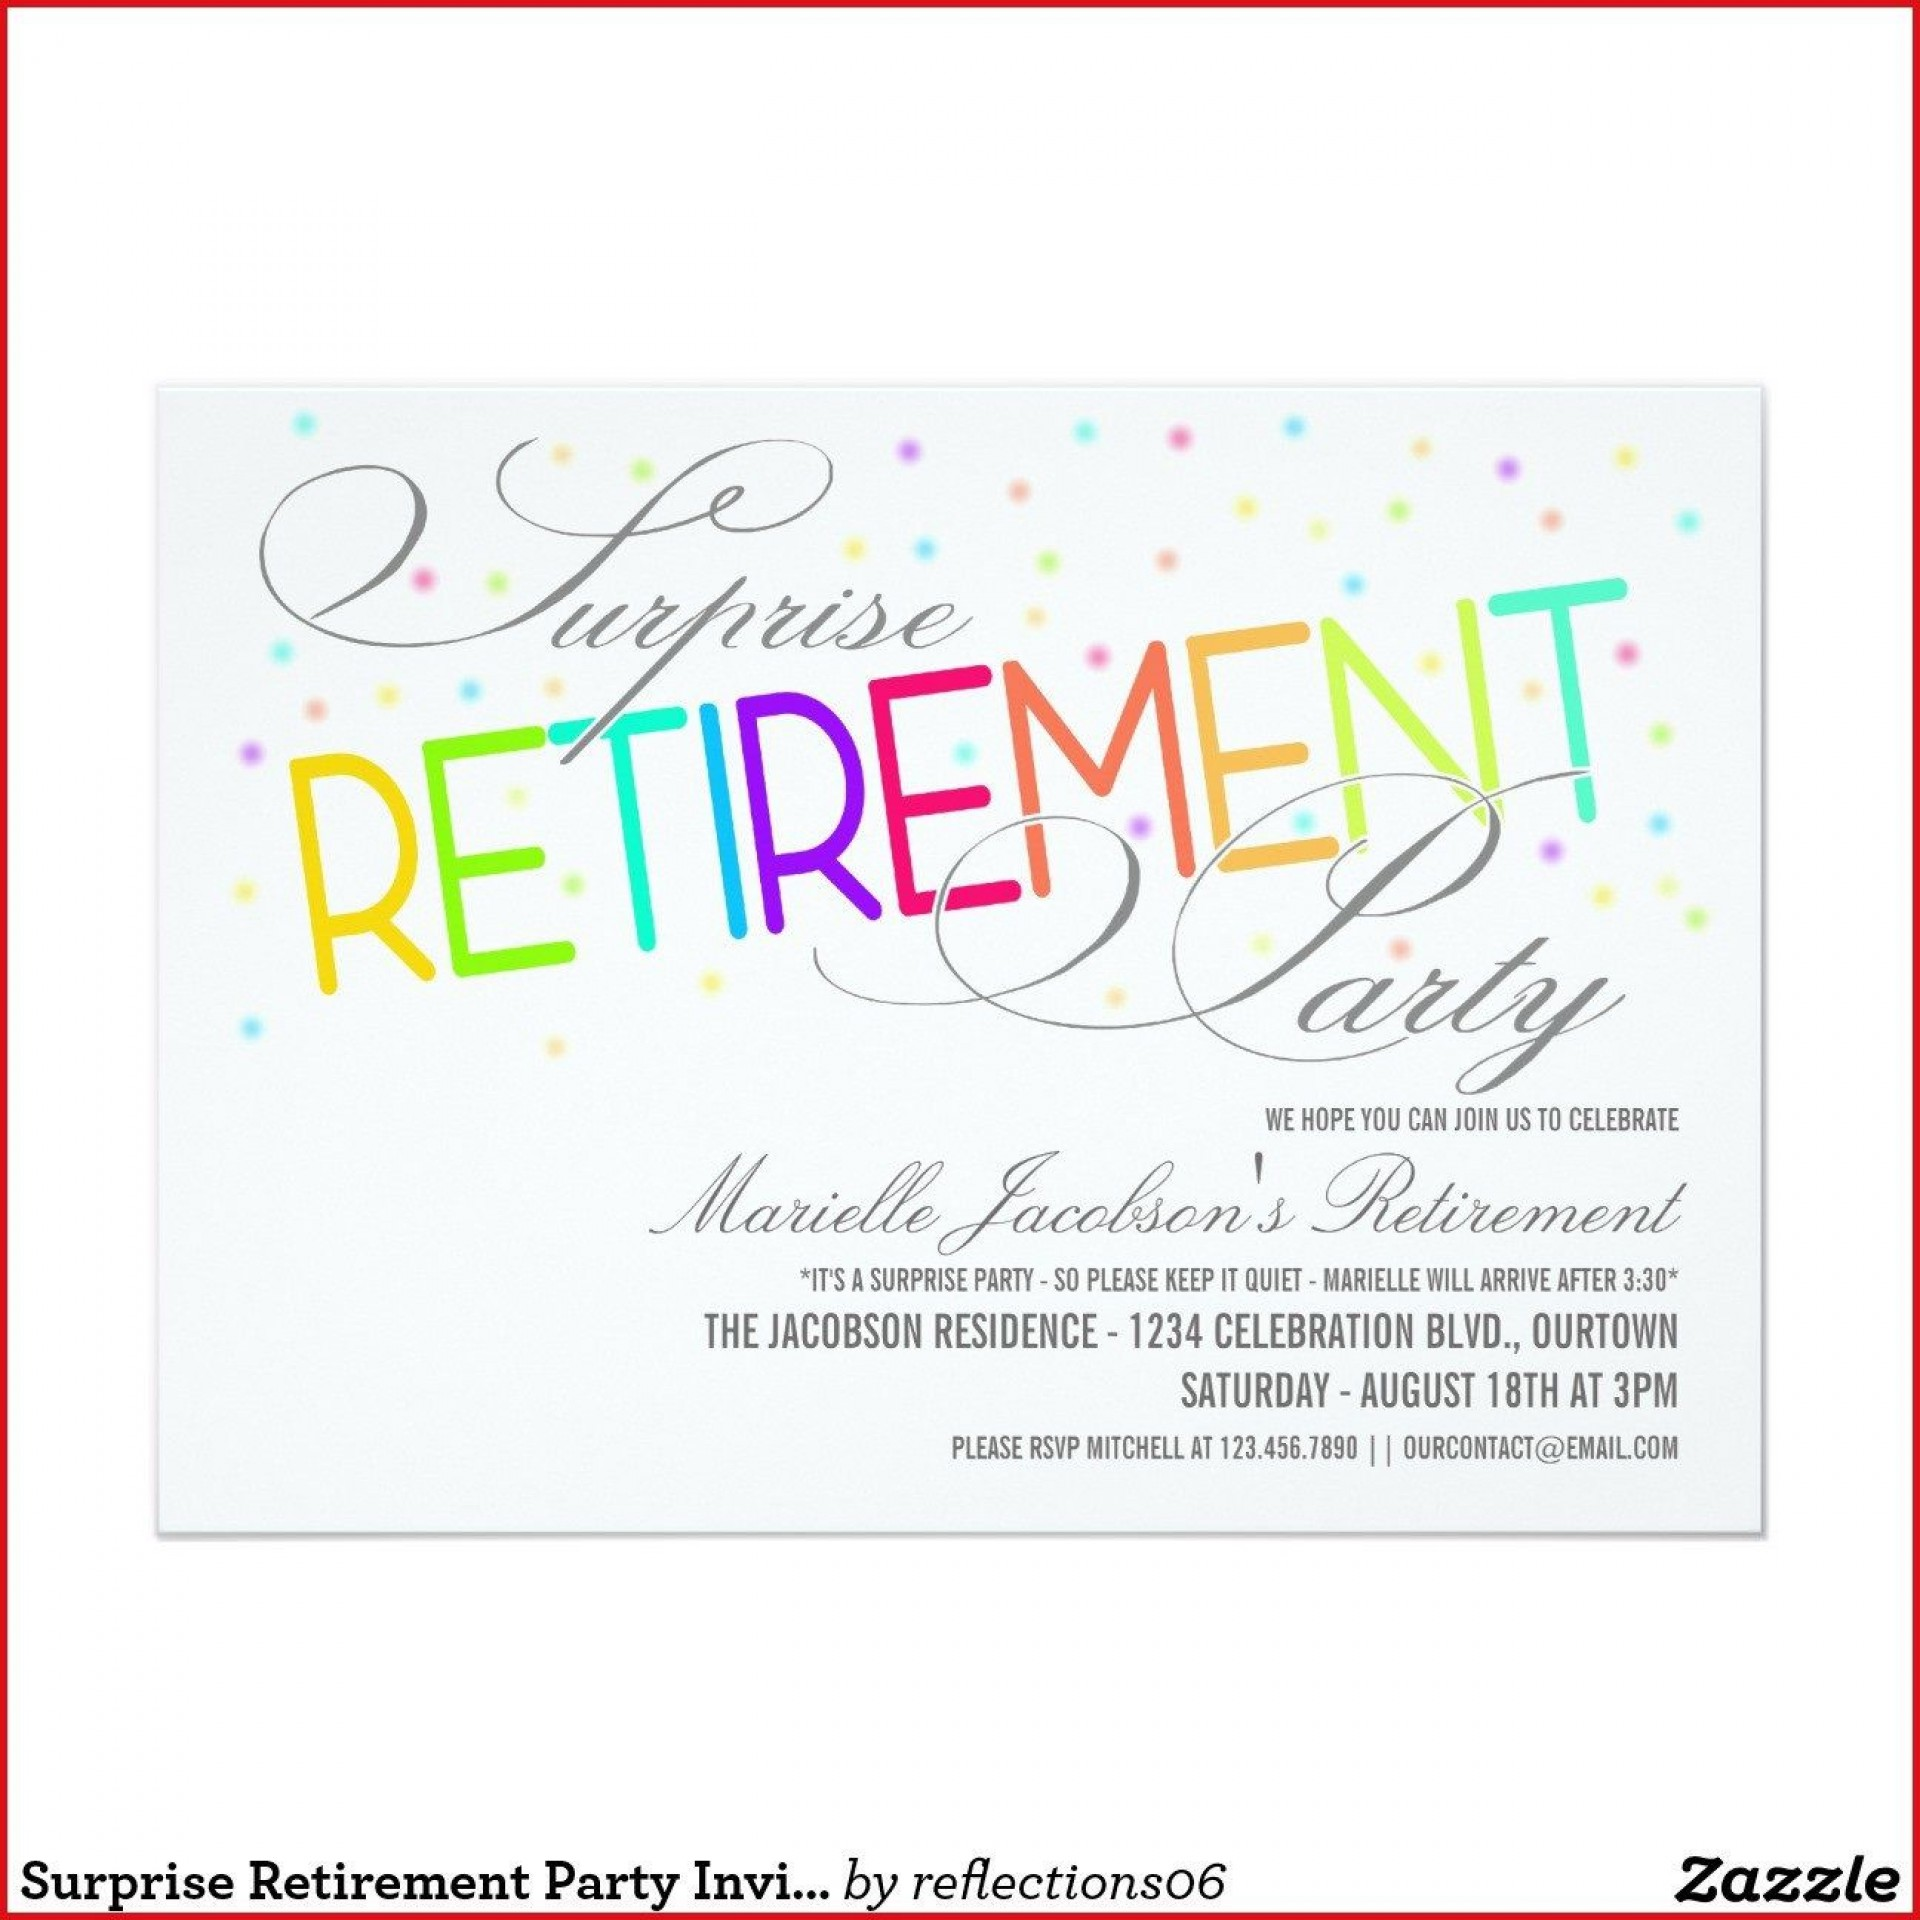 006 Impressive Free Retirement Reception Invitation Template Picture  Templates1920